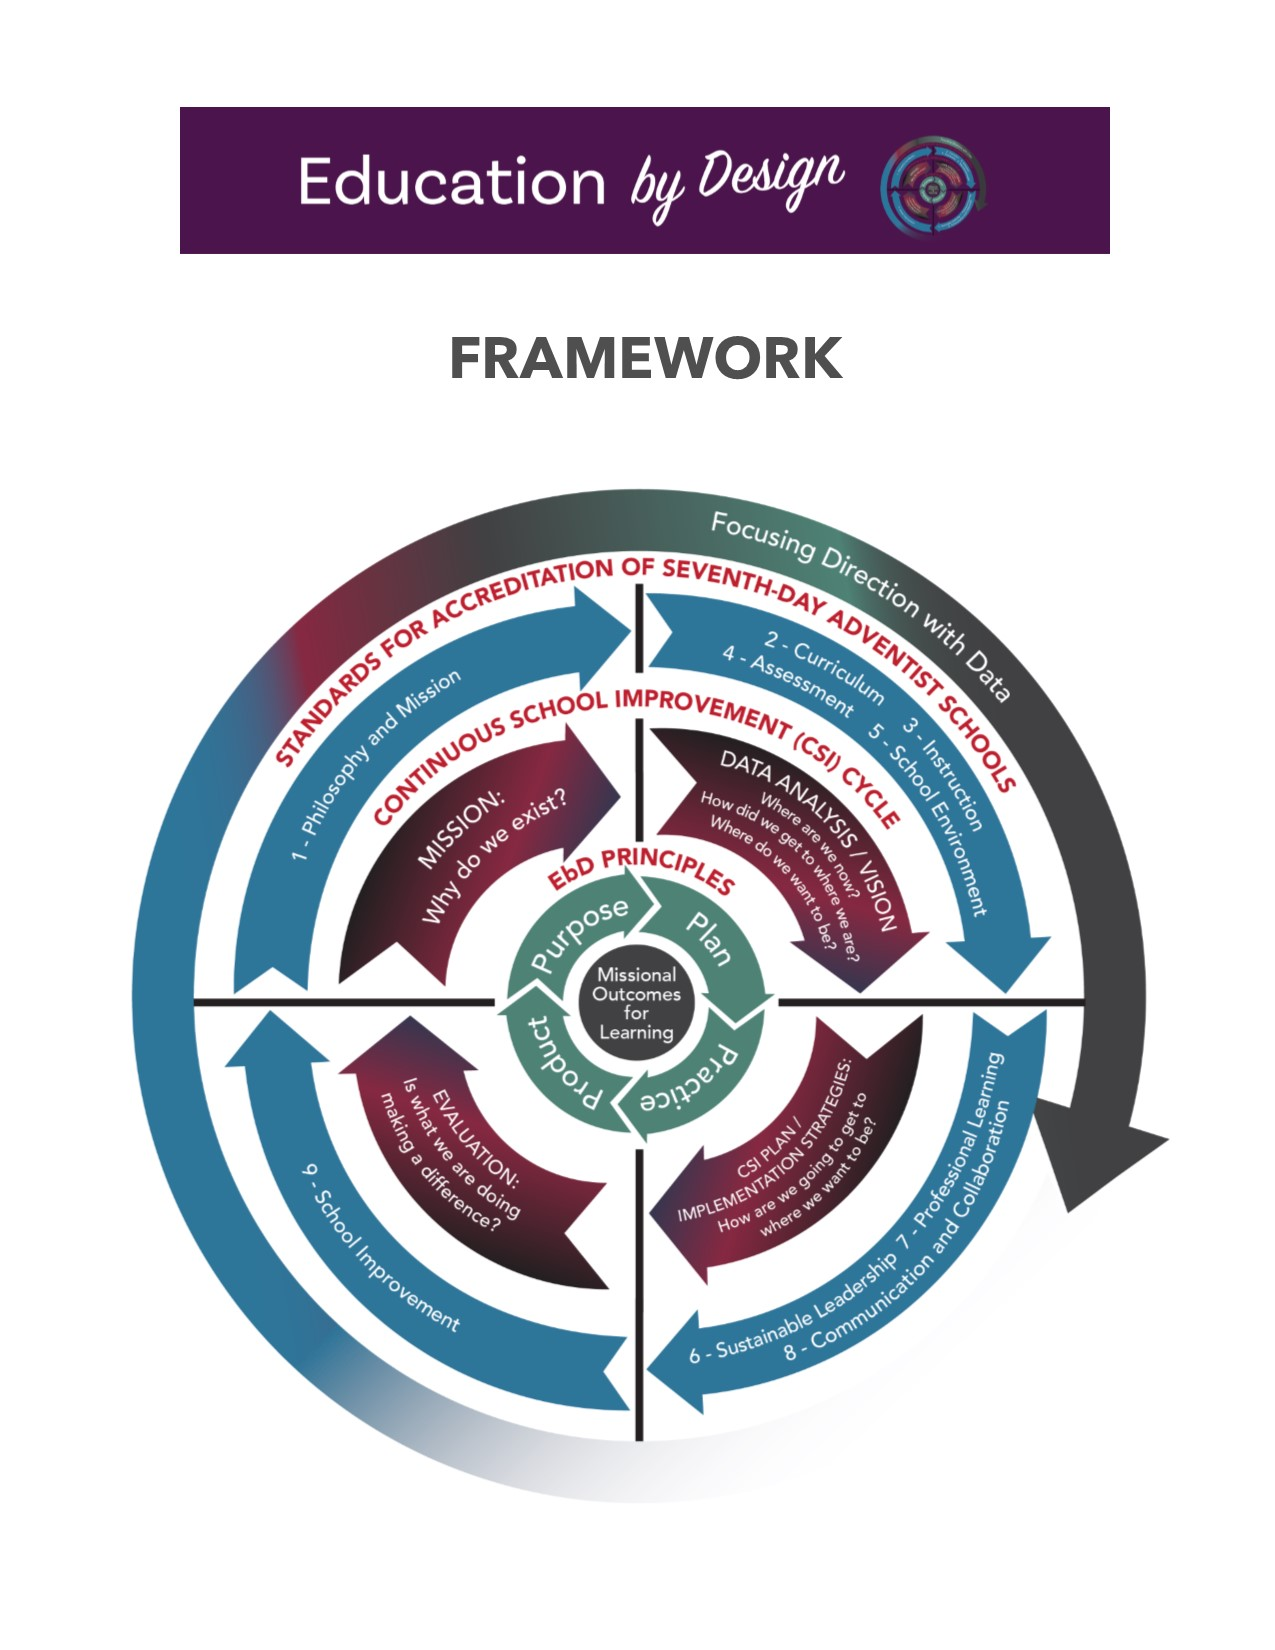 12 EDUCATION by Design FRAMEWORK—Layer 3, Part 5